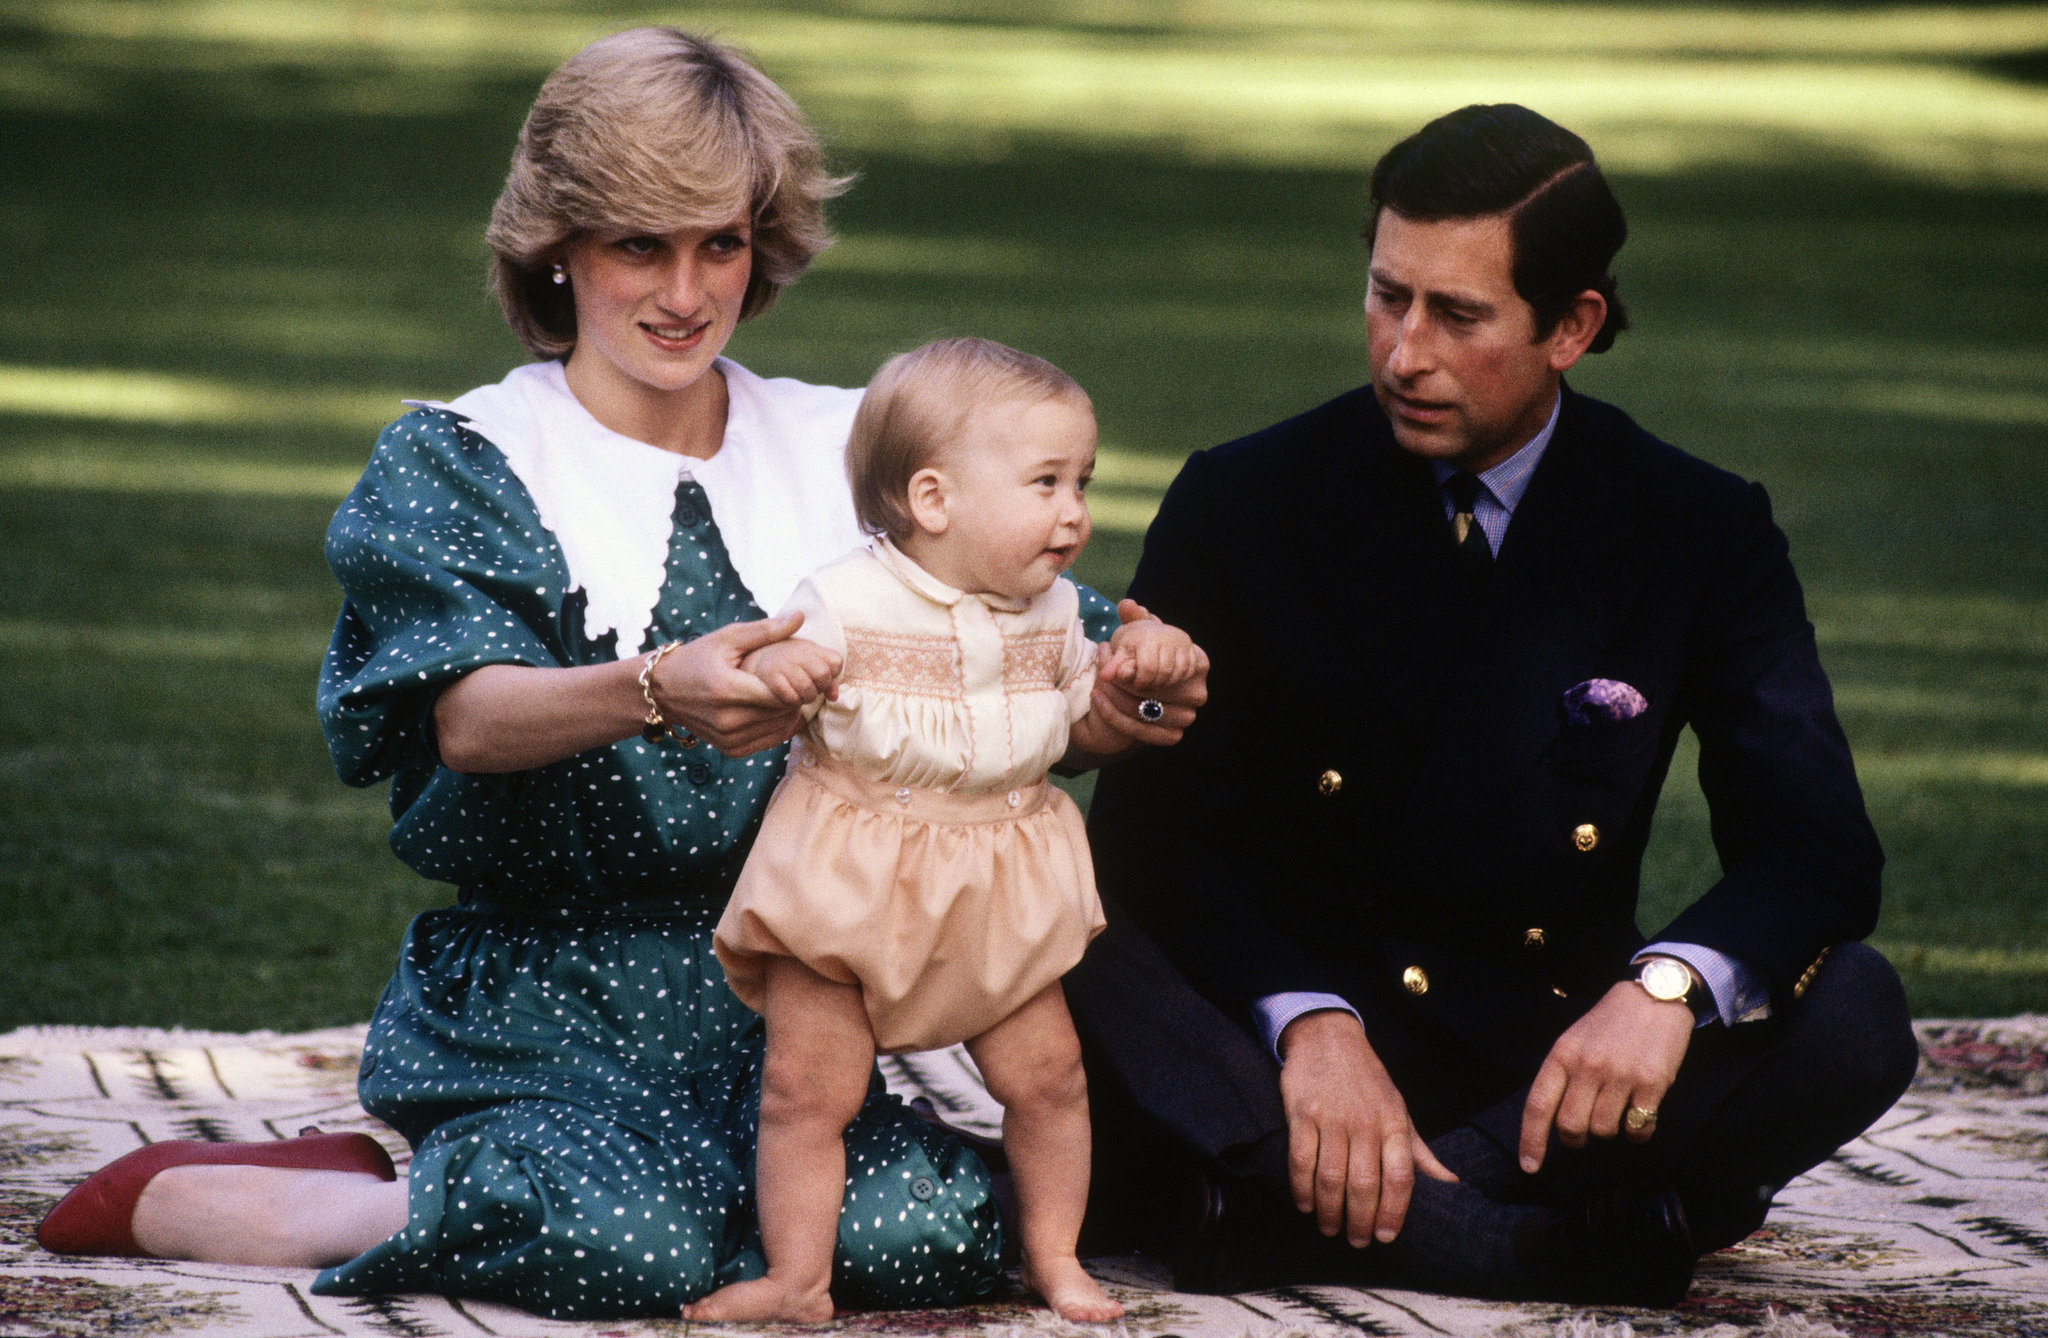 The Royal Family: Princess Diana, Prince Charles, and young Prince William